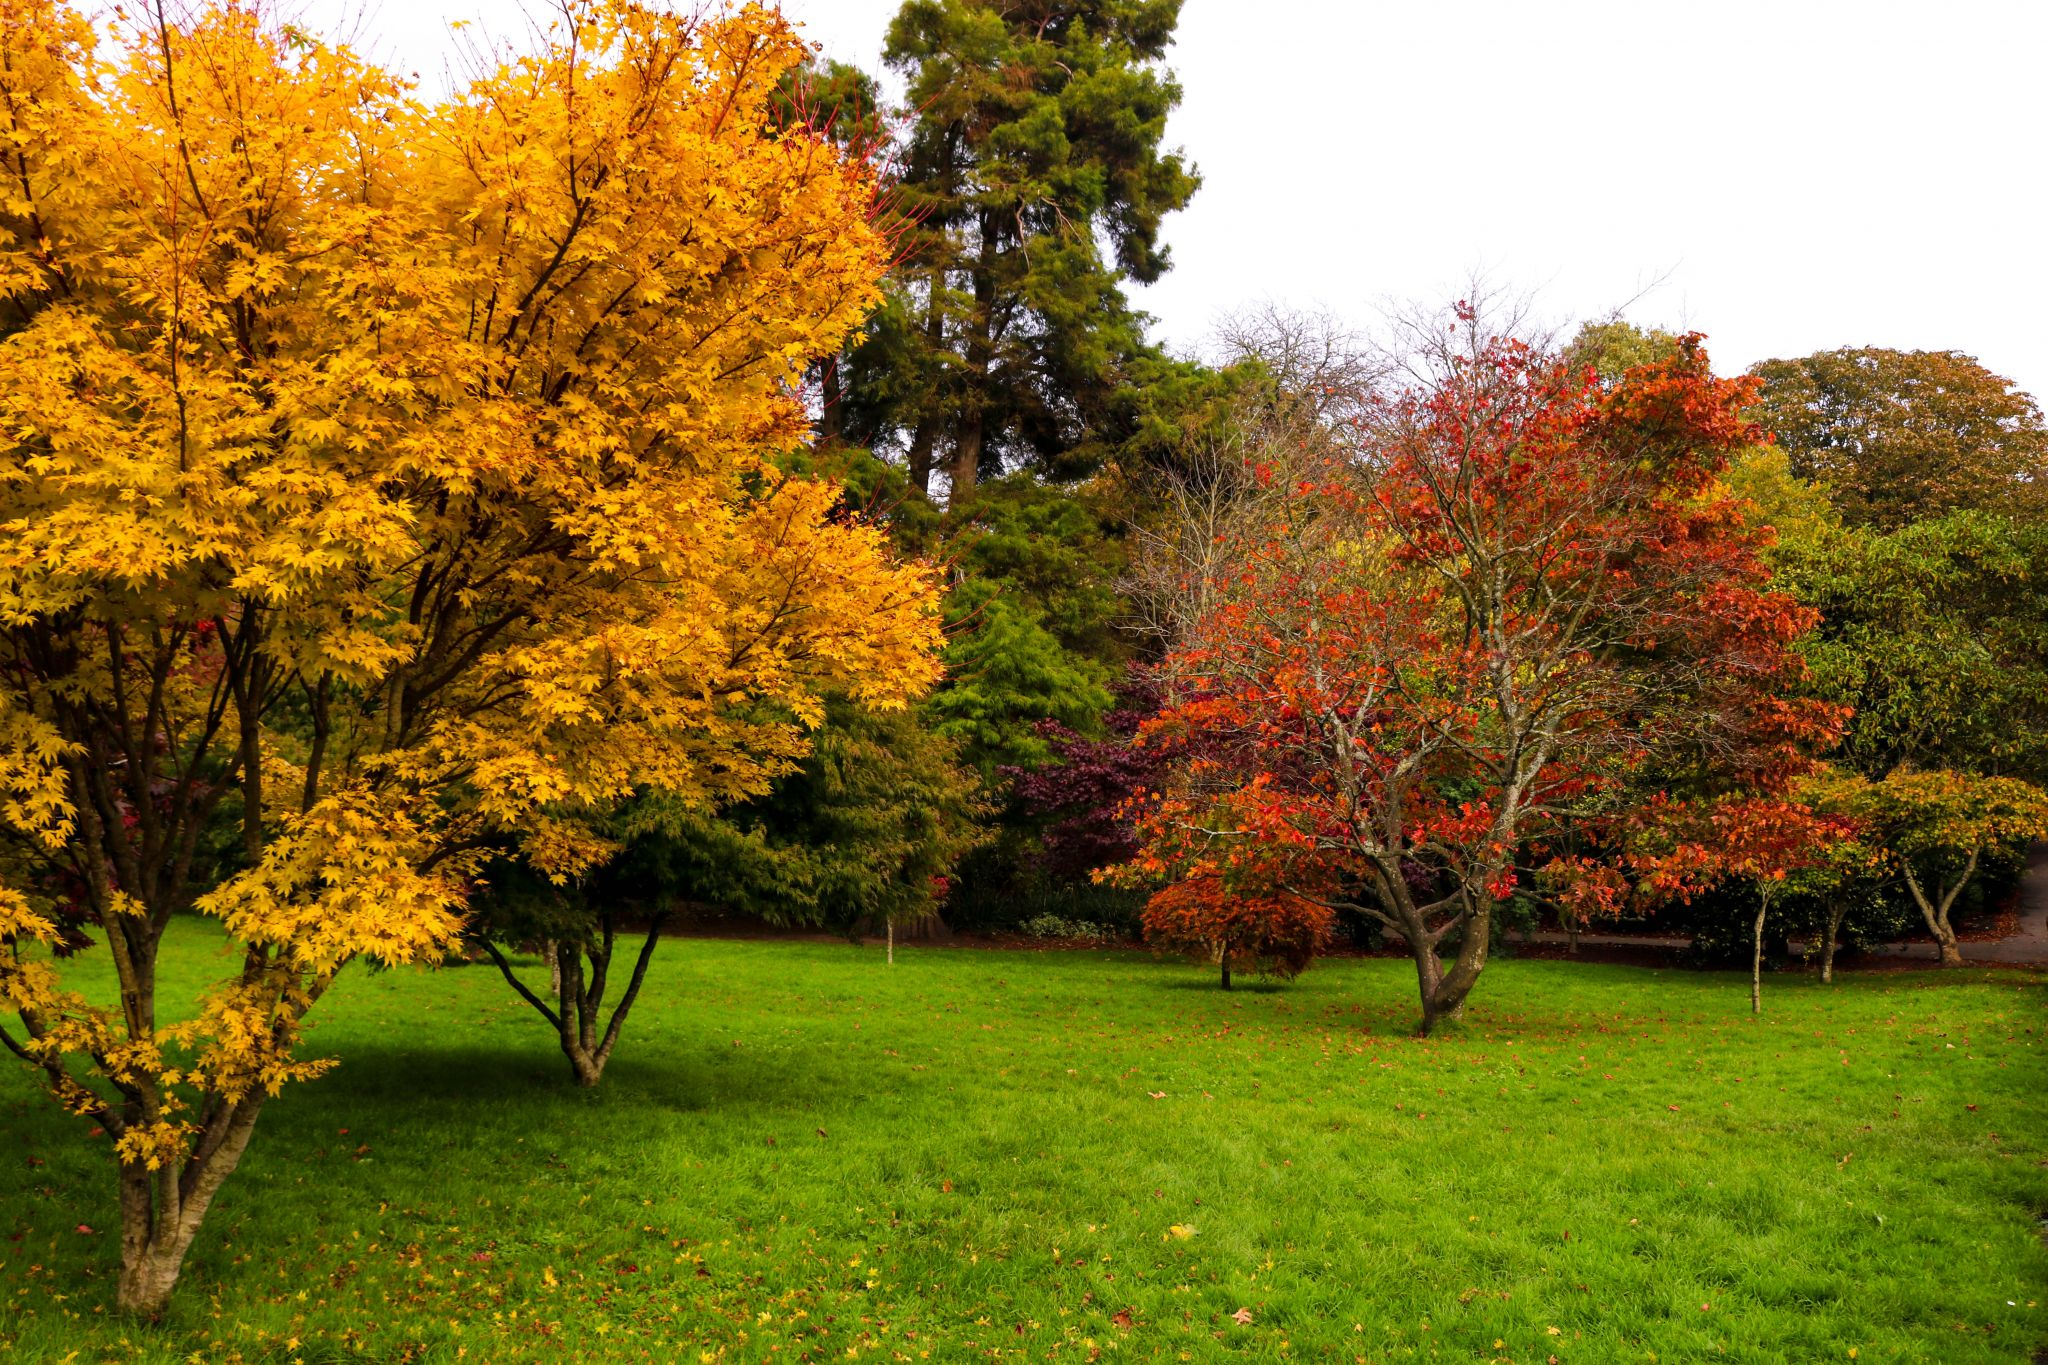 Autumn in Cardiff - photos to inspire you to get outside